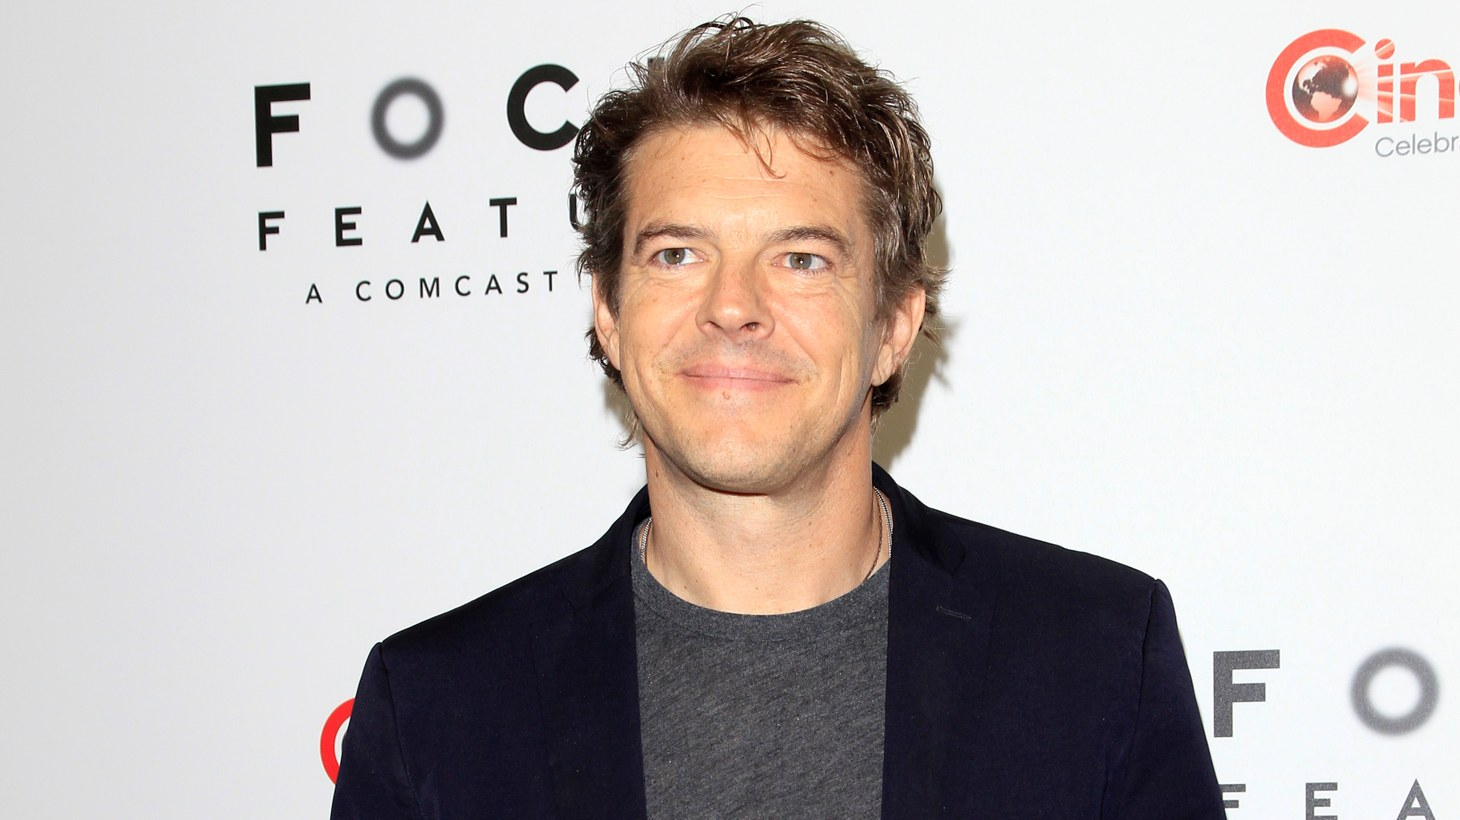 """Producer Jason Blum recently closed a nine-figure deal with NBCUniversal for three new """"Exorcist"""" films. Instead of taking a piece of the movies' profits, the filmmakers and stars will be paid up front from one lump sum."""